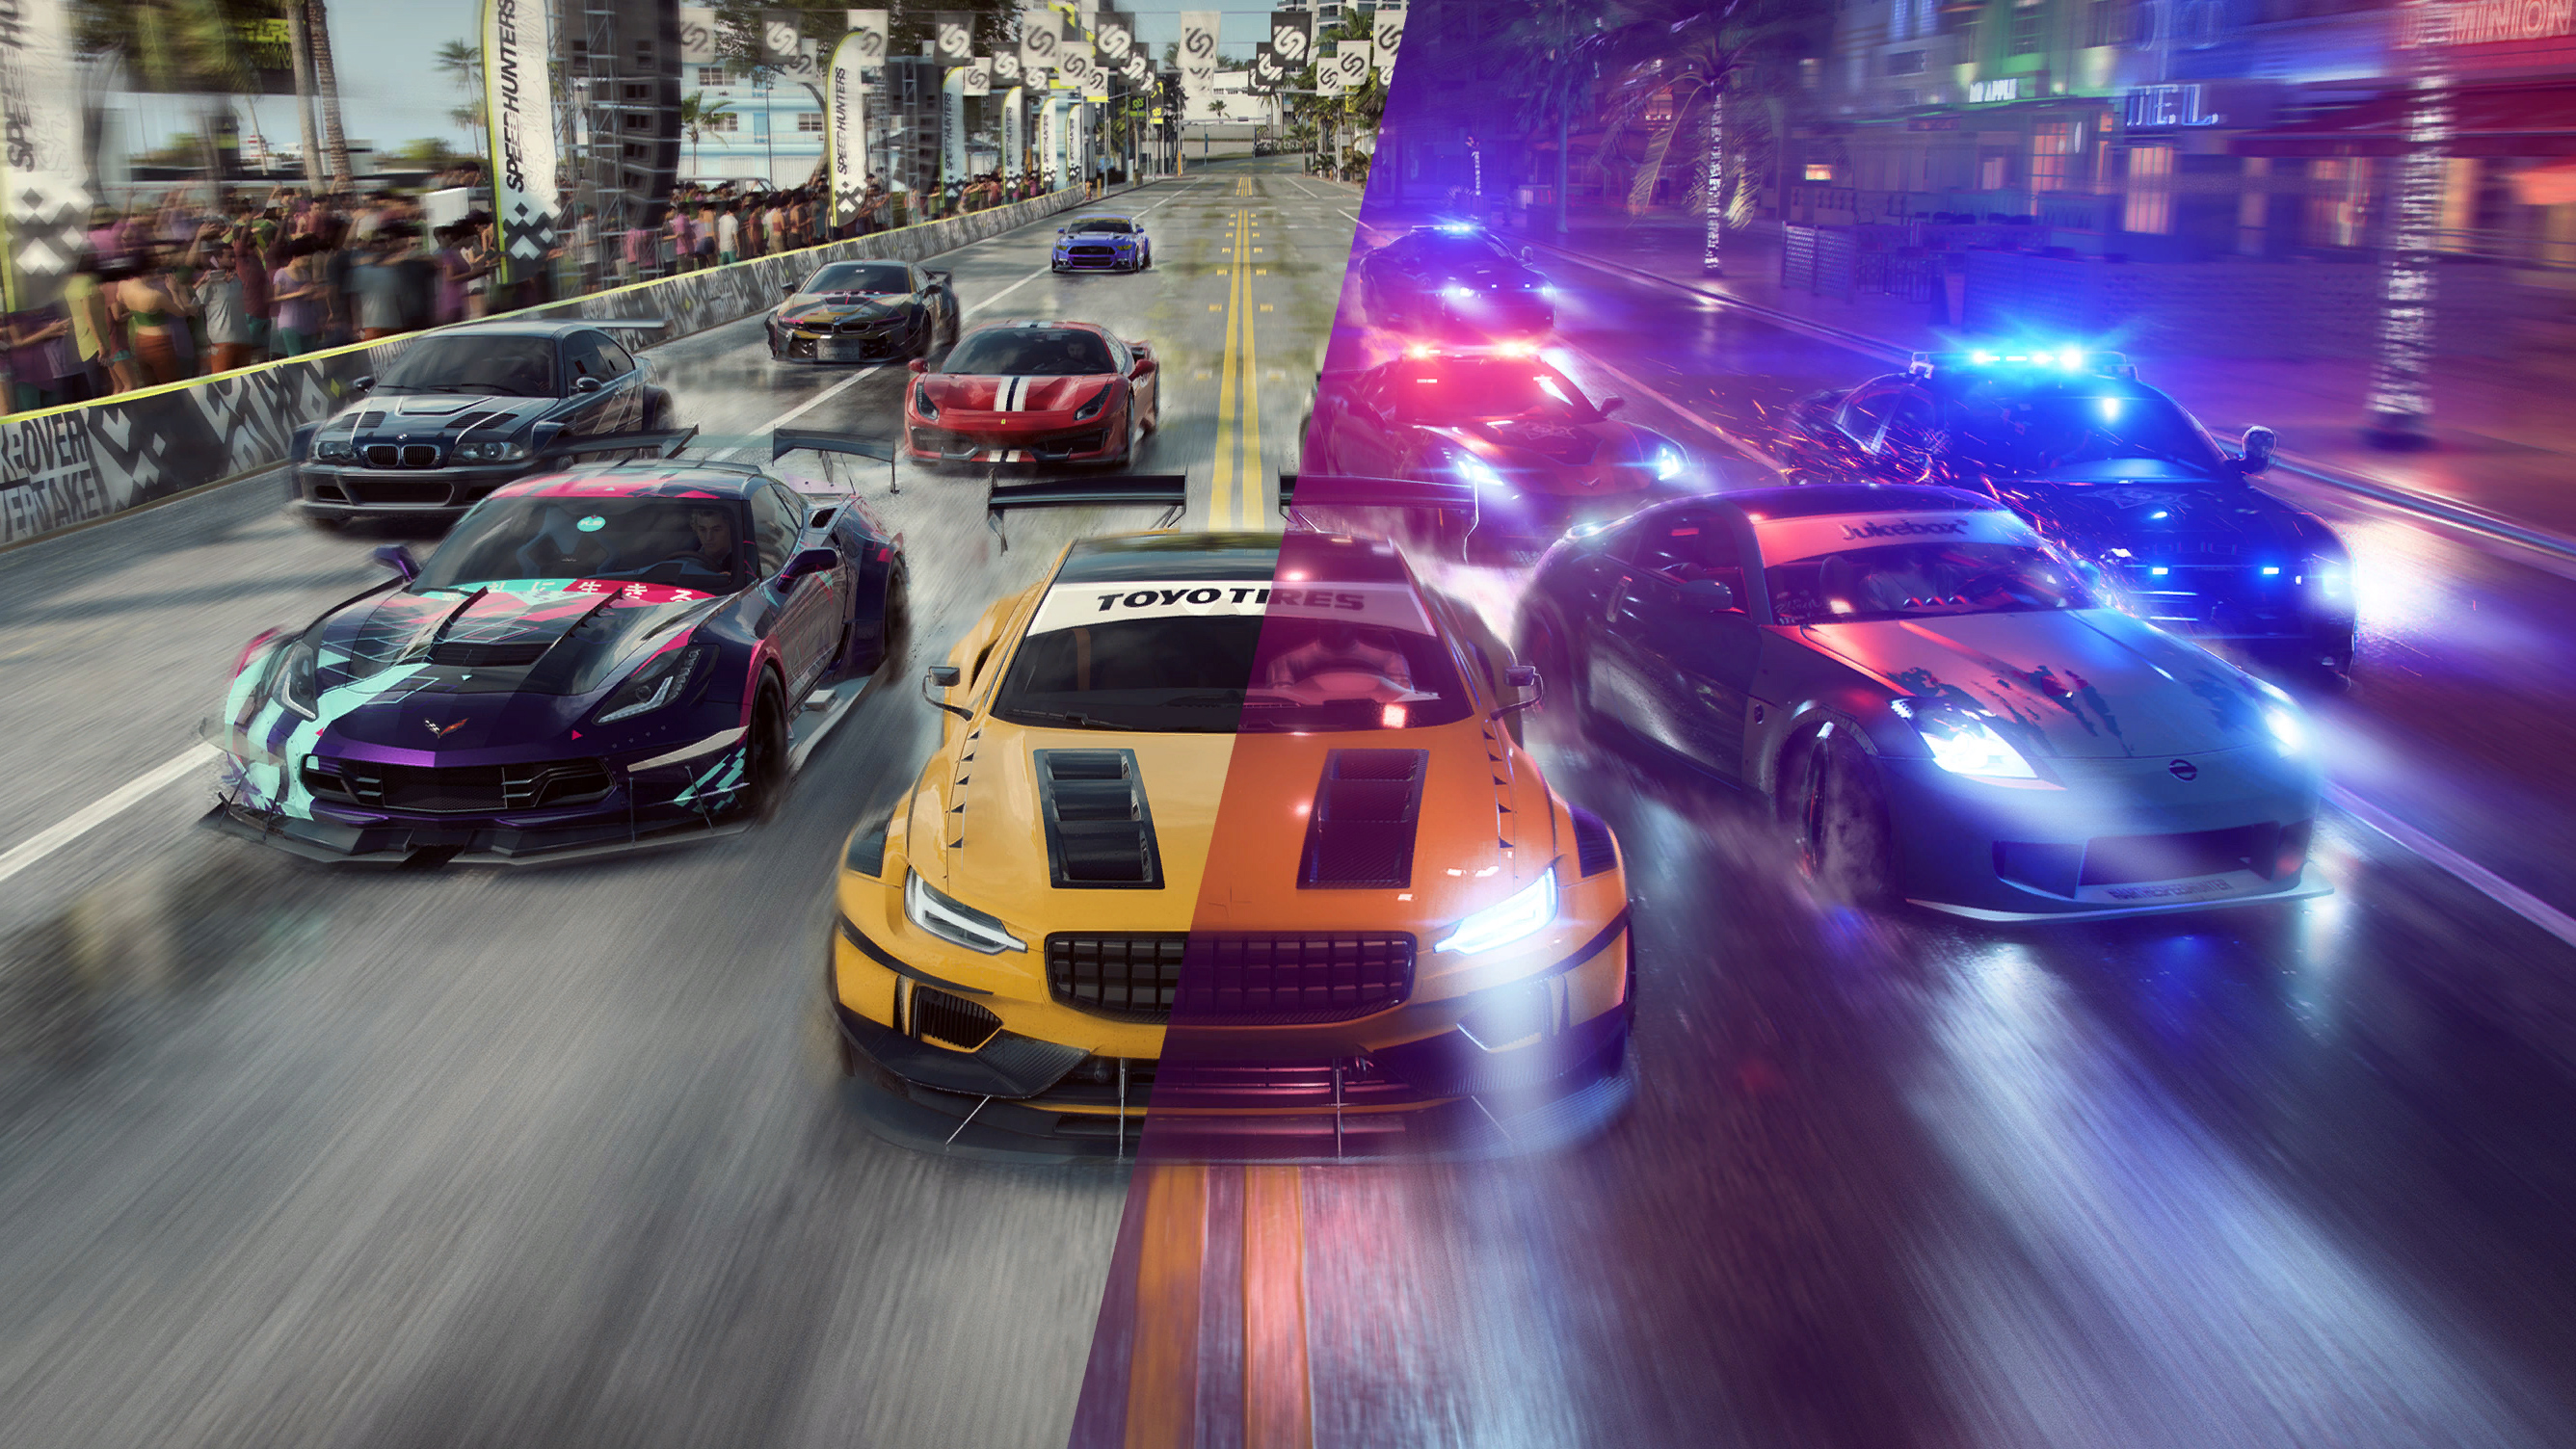 Nfs Heat 2019 Hd Games 4k Wallpapers Images Backgrounds